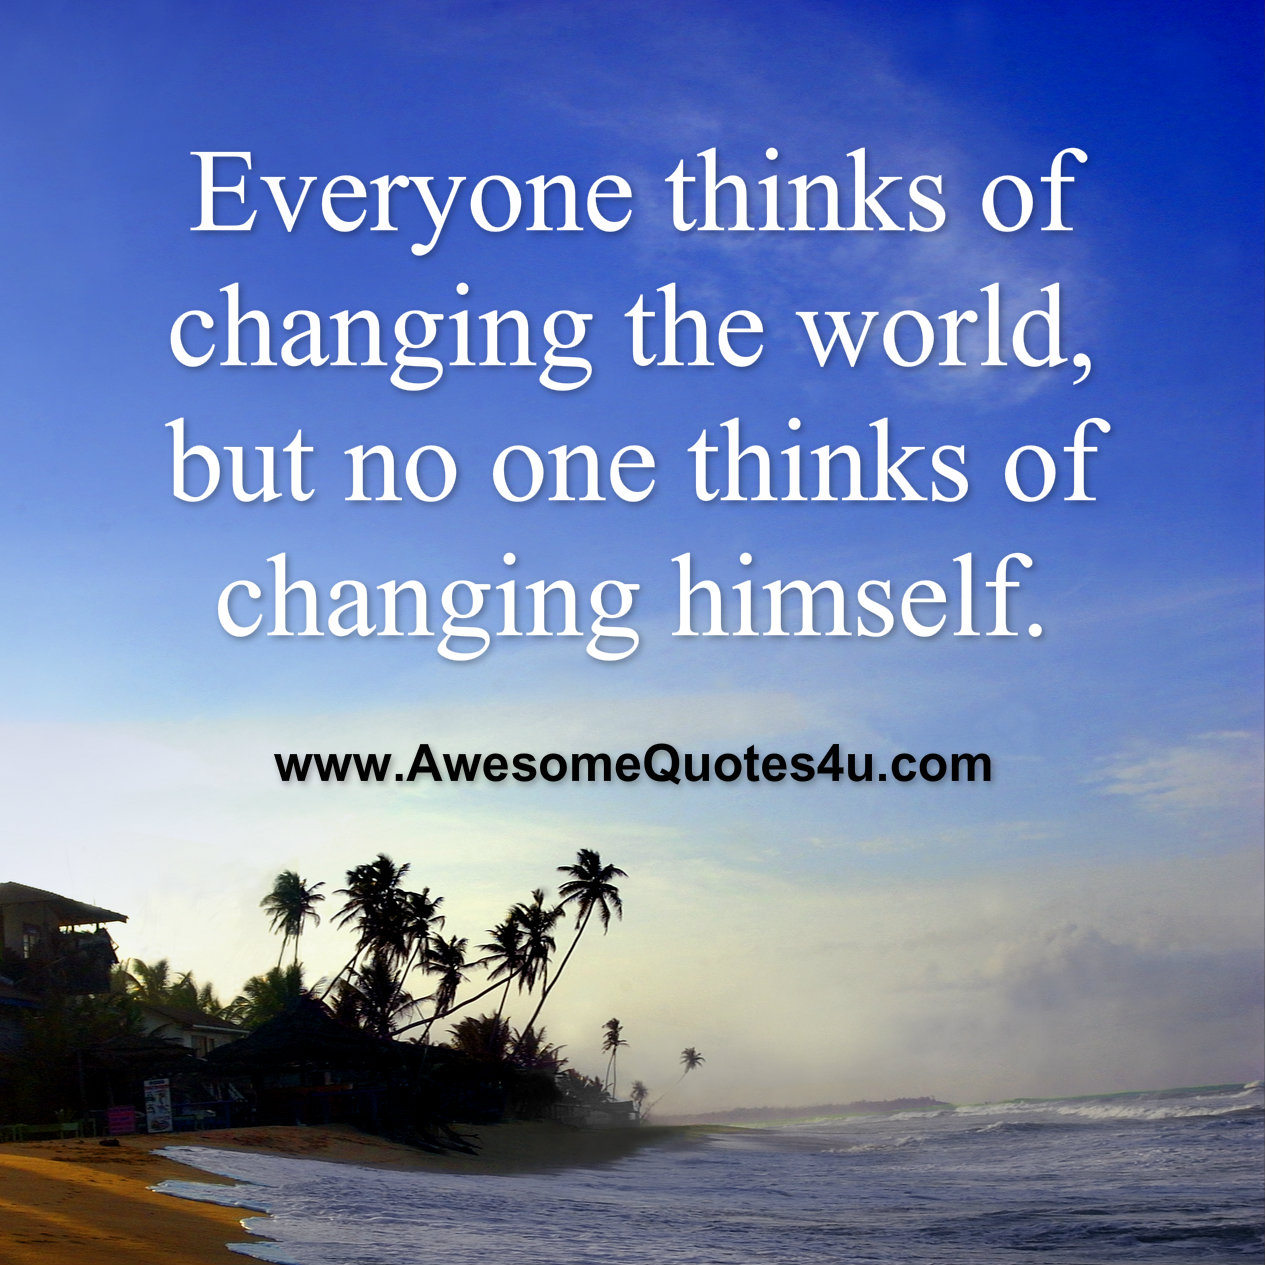 Quotes About Changing The World: Awesome Quotes: Everyone Thinks Of Changing The World